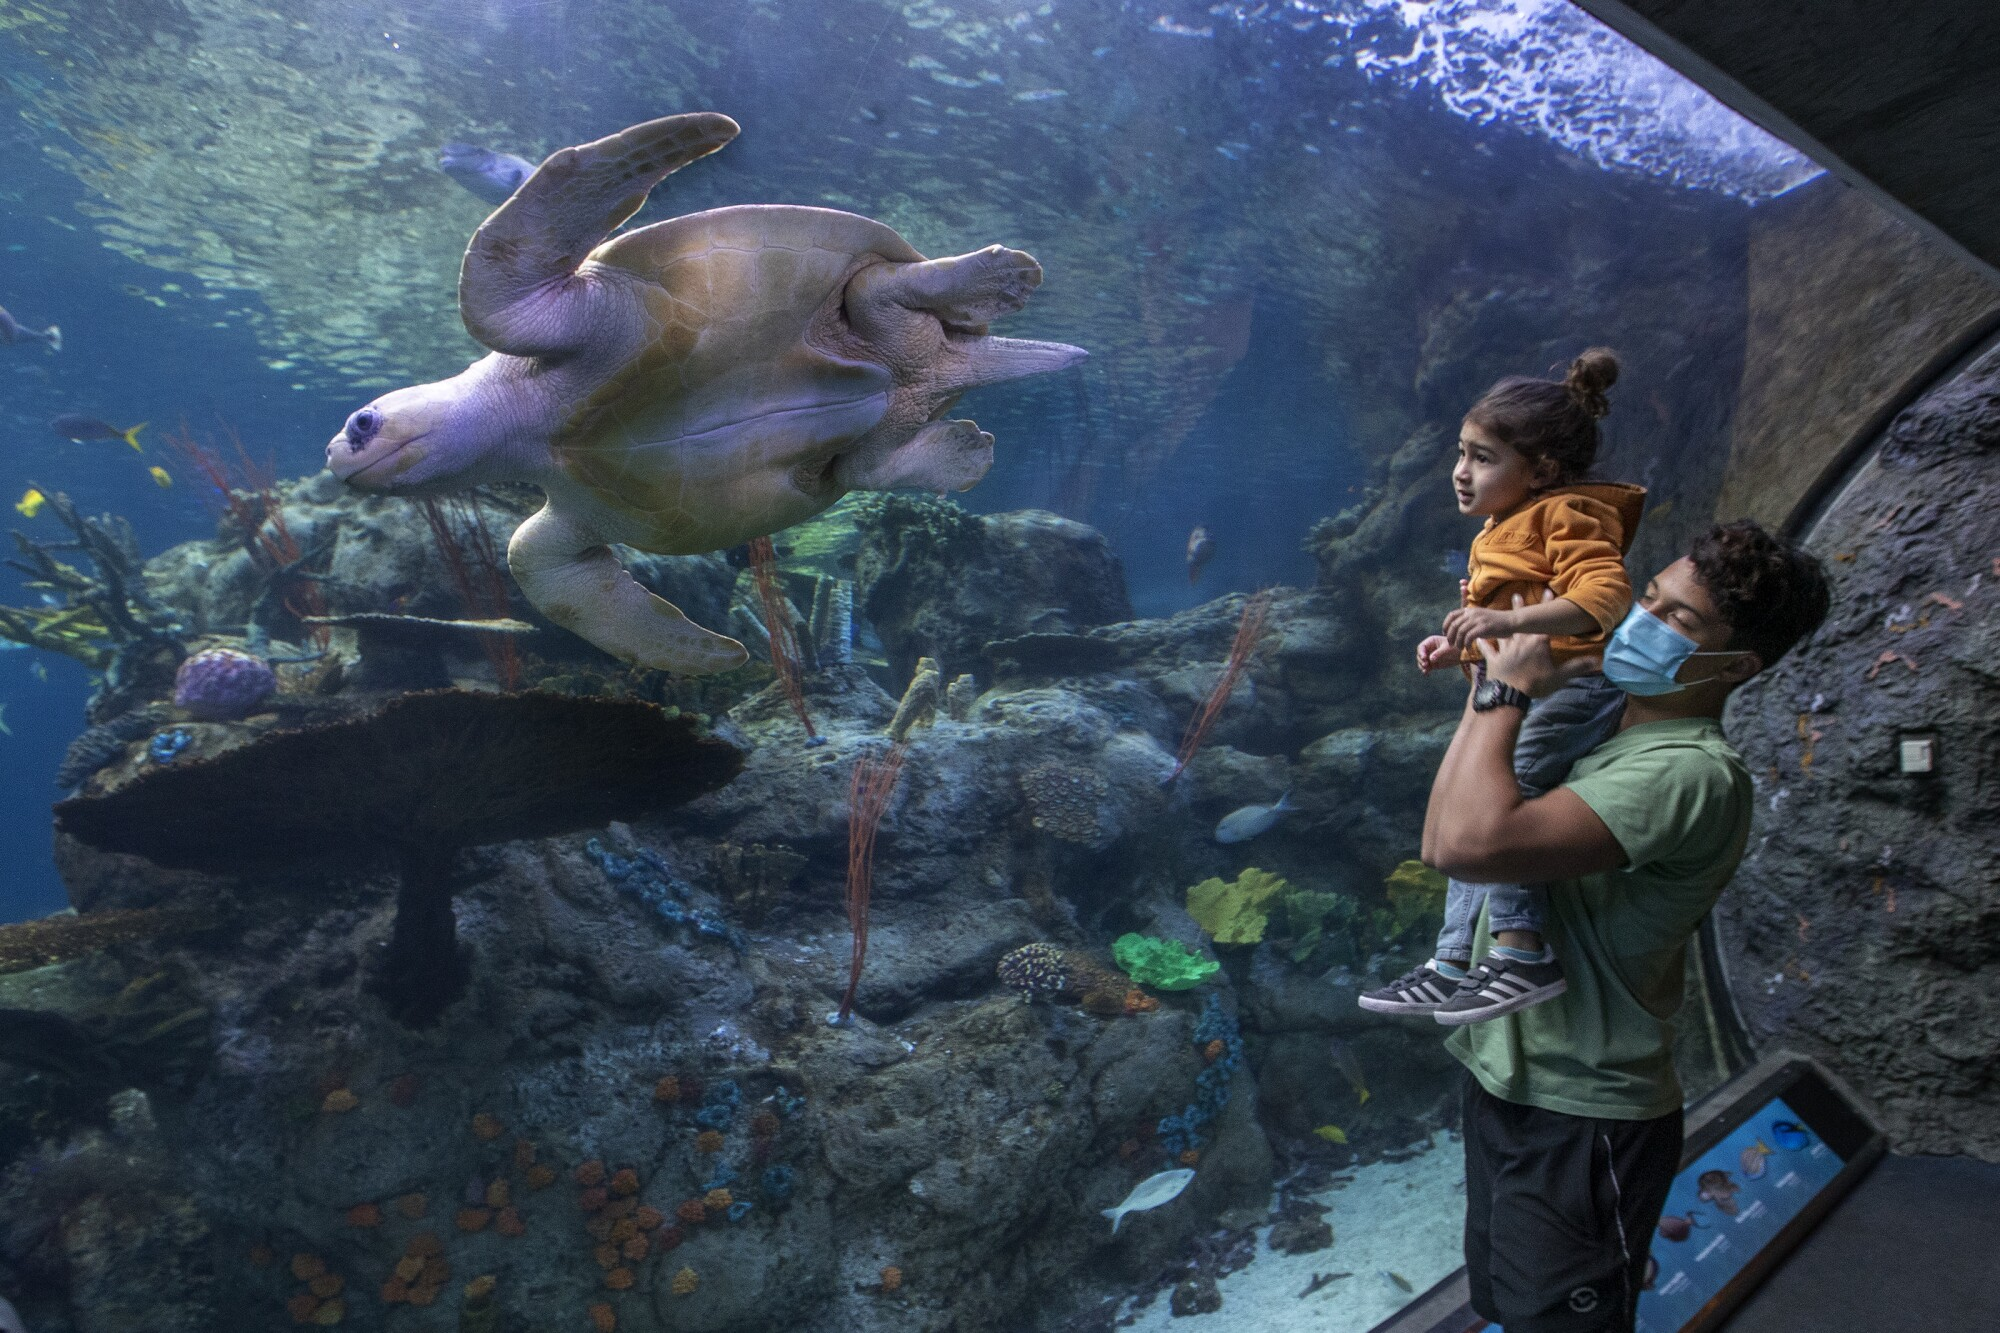 A teenage boy holds up a young child as they watch a turtle swim past them in an exhibit